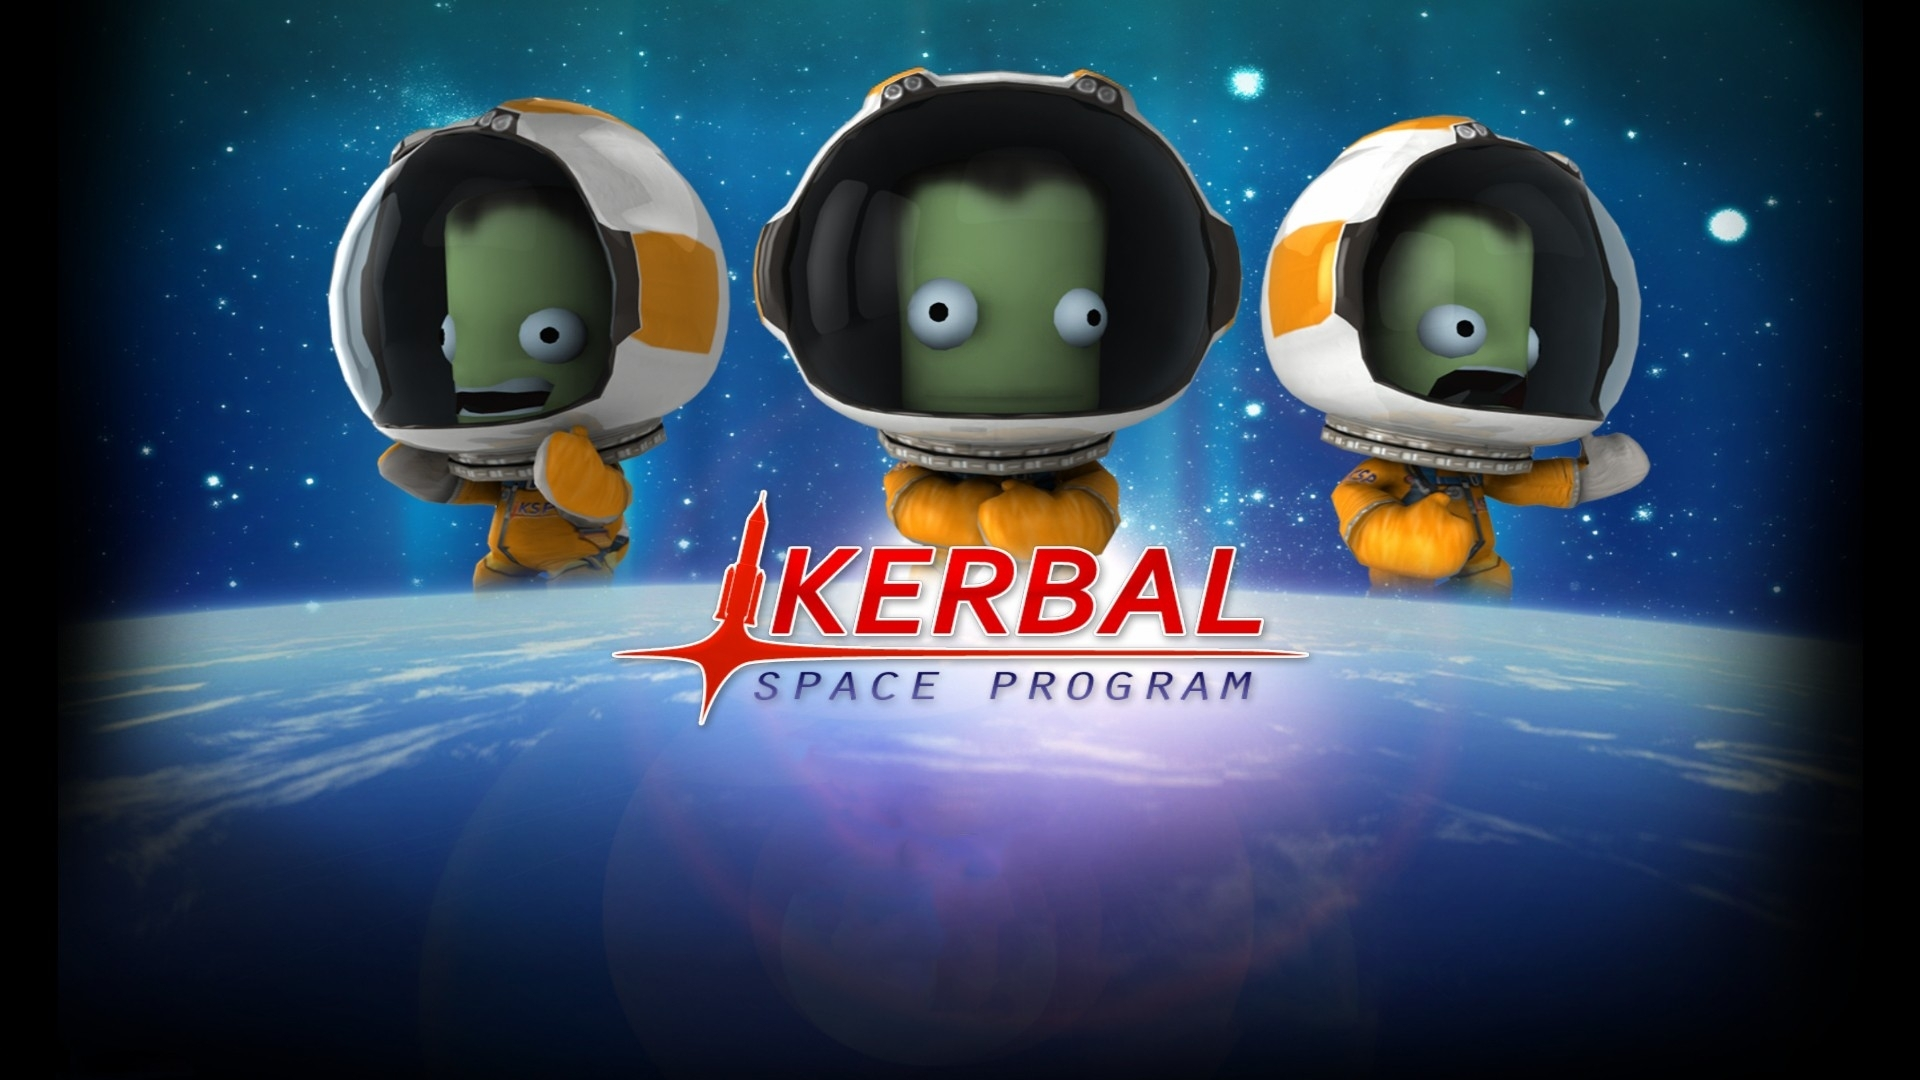 Kerbal Space Program | WikiSciFi | FANDOM powered by Wikia